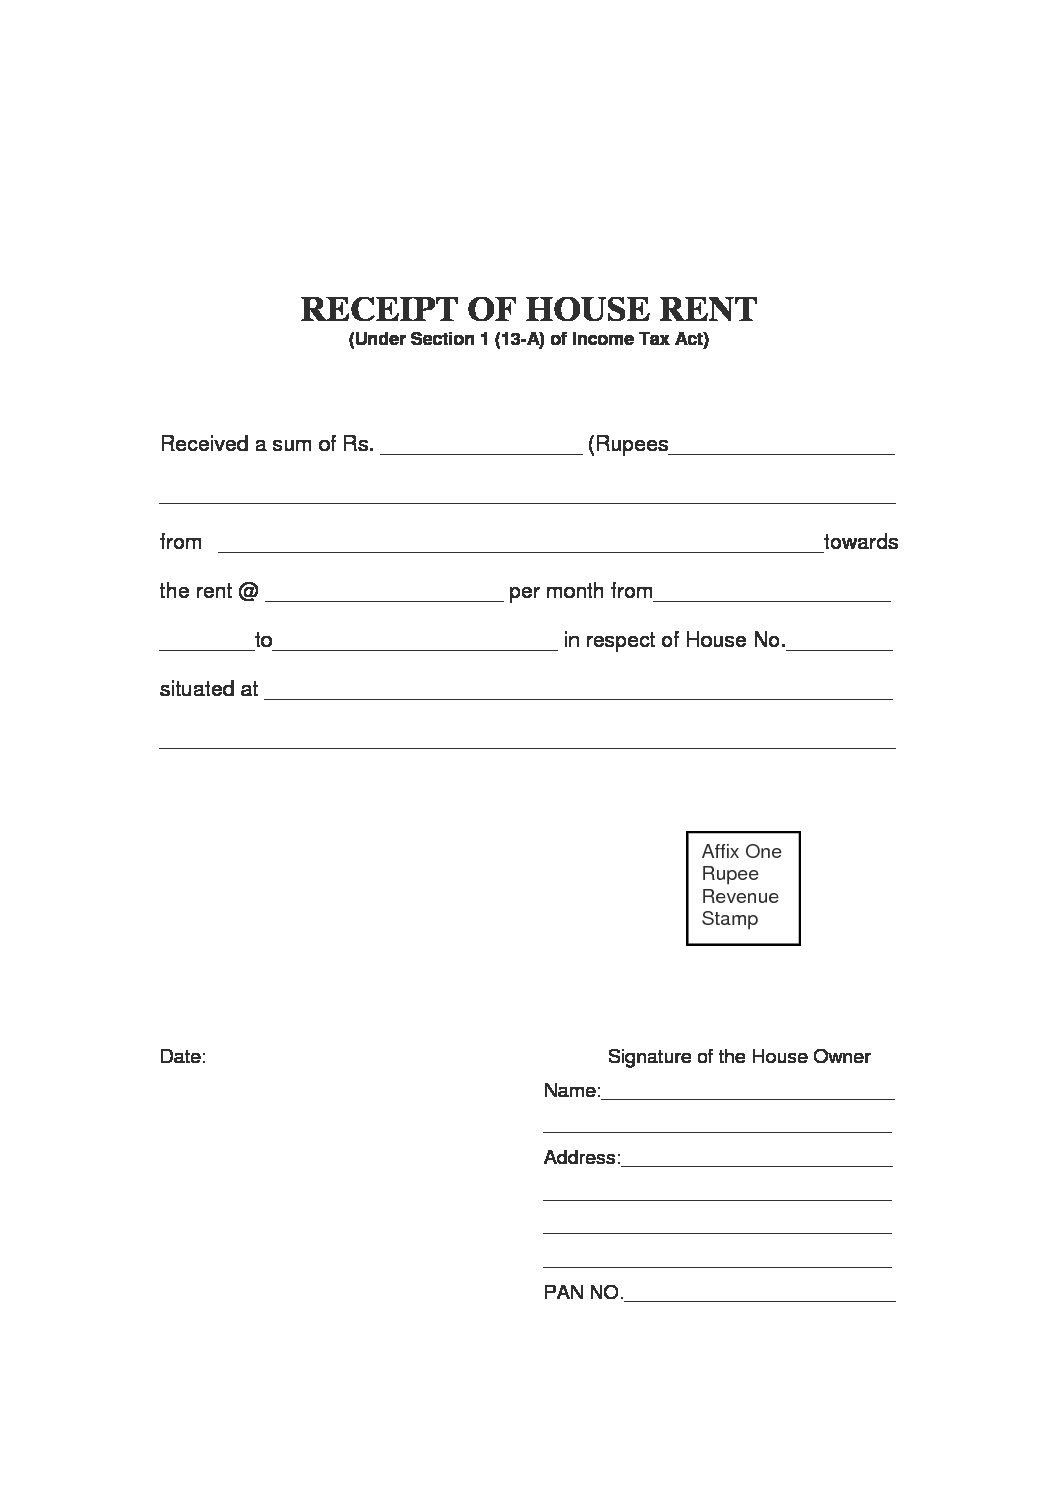 doc 1380782 landlord rent receipt ontario landlord and tenant doc1380782 landlord rent receipt ontario landlord and tenant landlord rent receipt